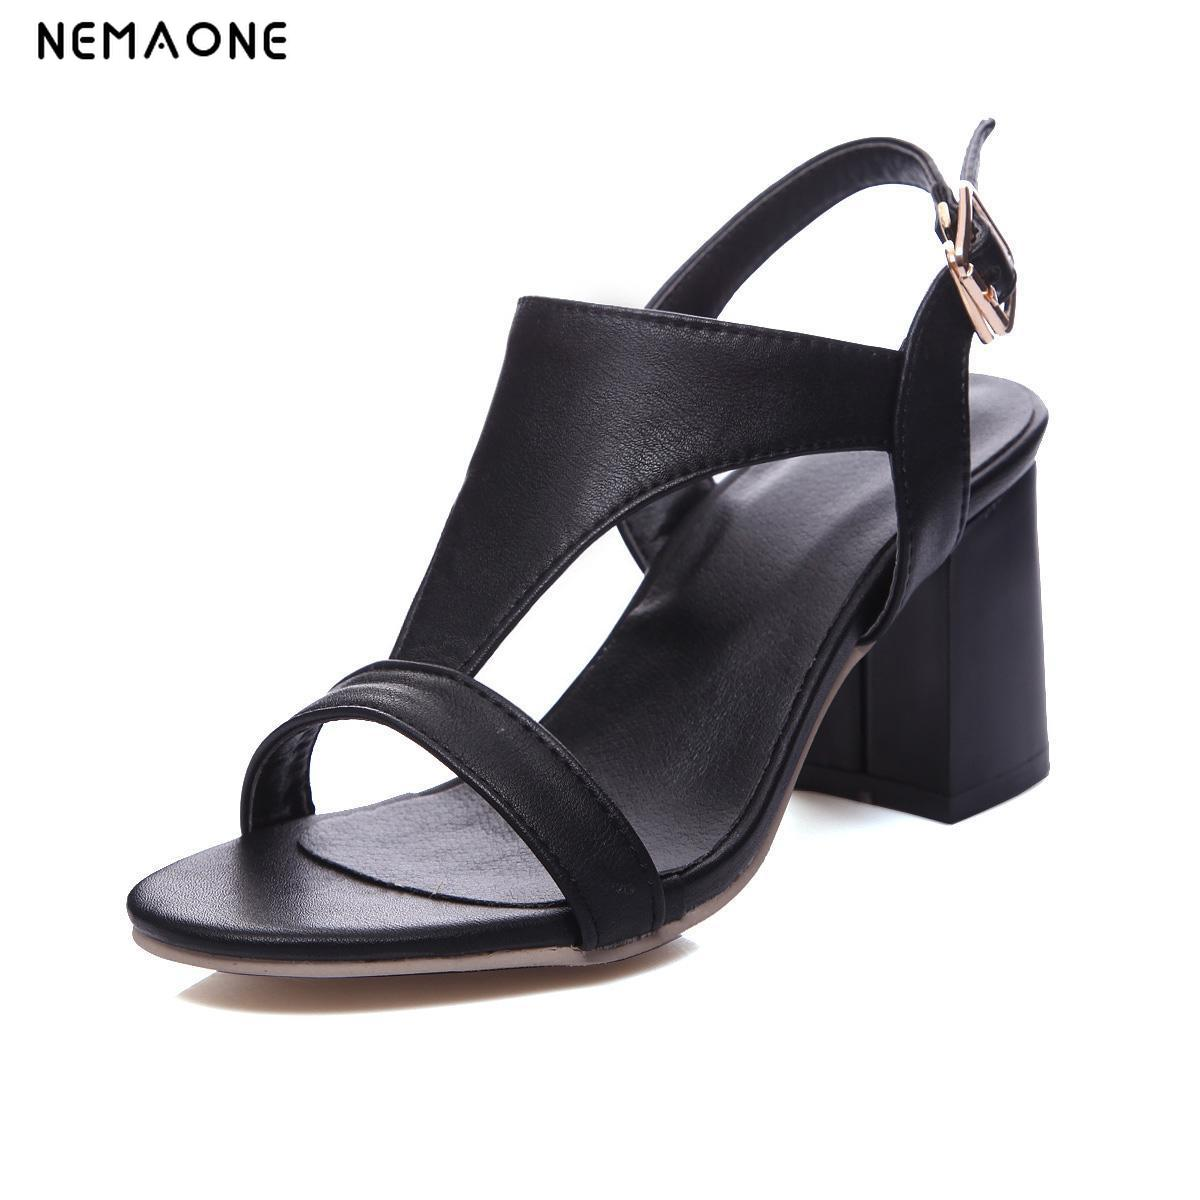 NEMAONE 2019 New classics women shoes sexy thick high heels sandals summer  shoes woman elegant ladies shoes large size 34-43 - fastboxx Review bab2e8452c8